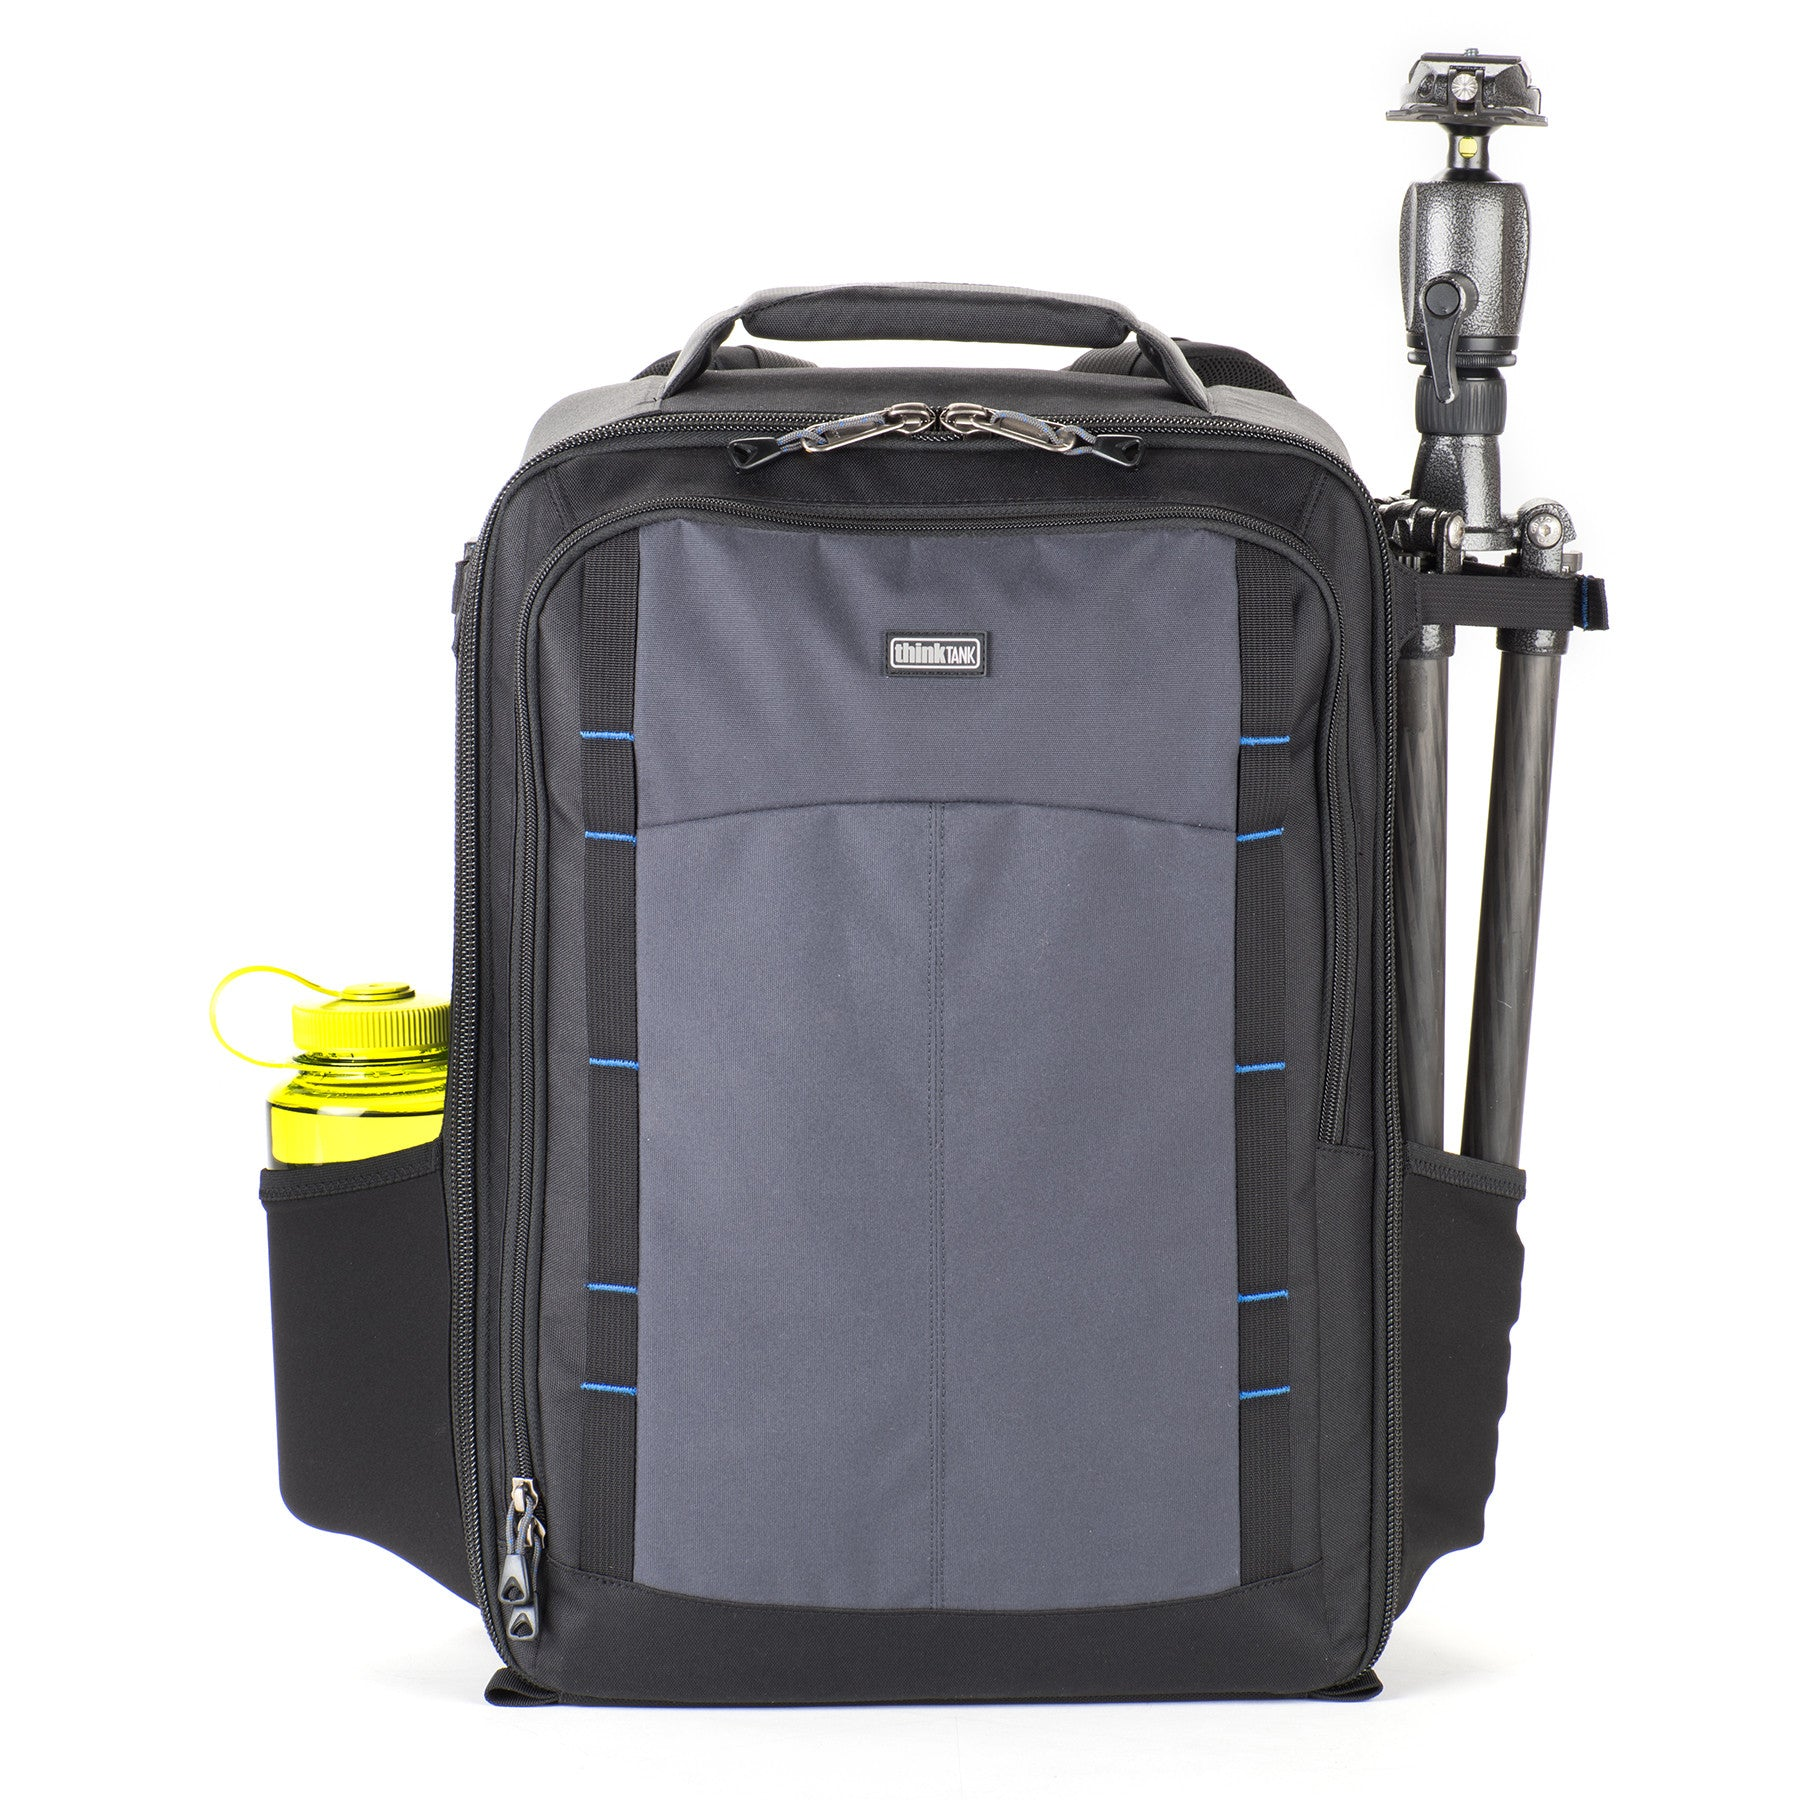 6c8cf194dd446 FPV Airport Helipak™ Backpack is built to transport your entire FPV ...